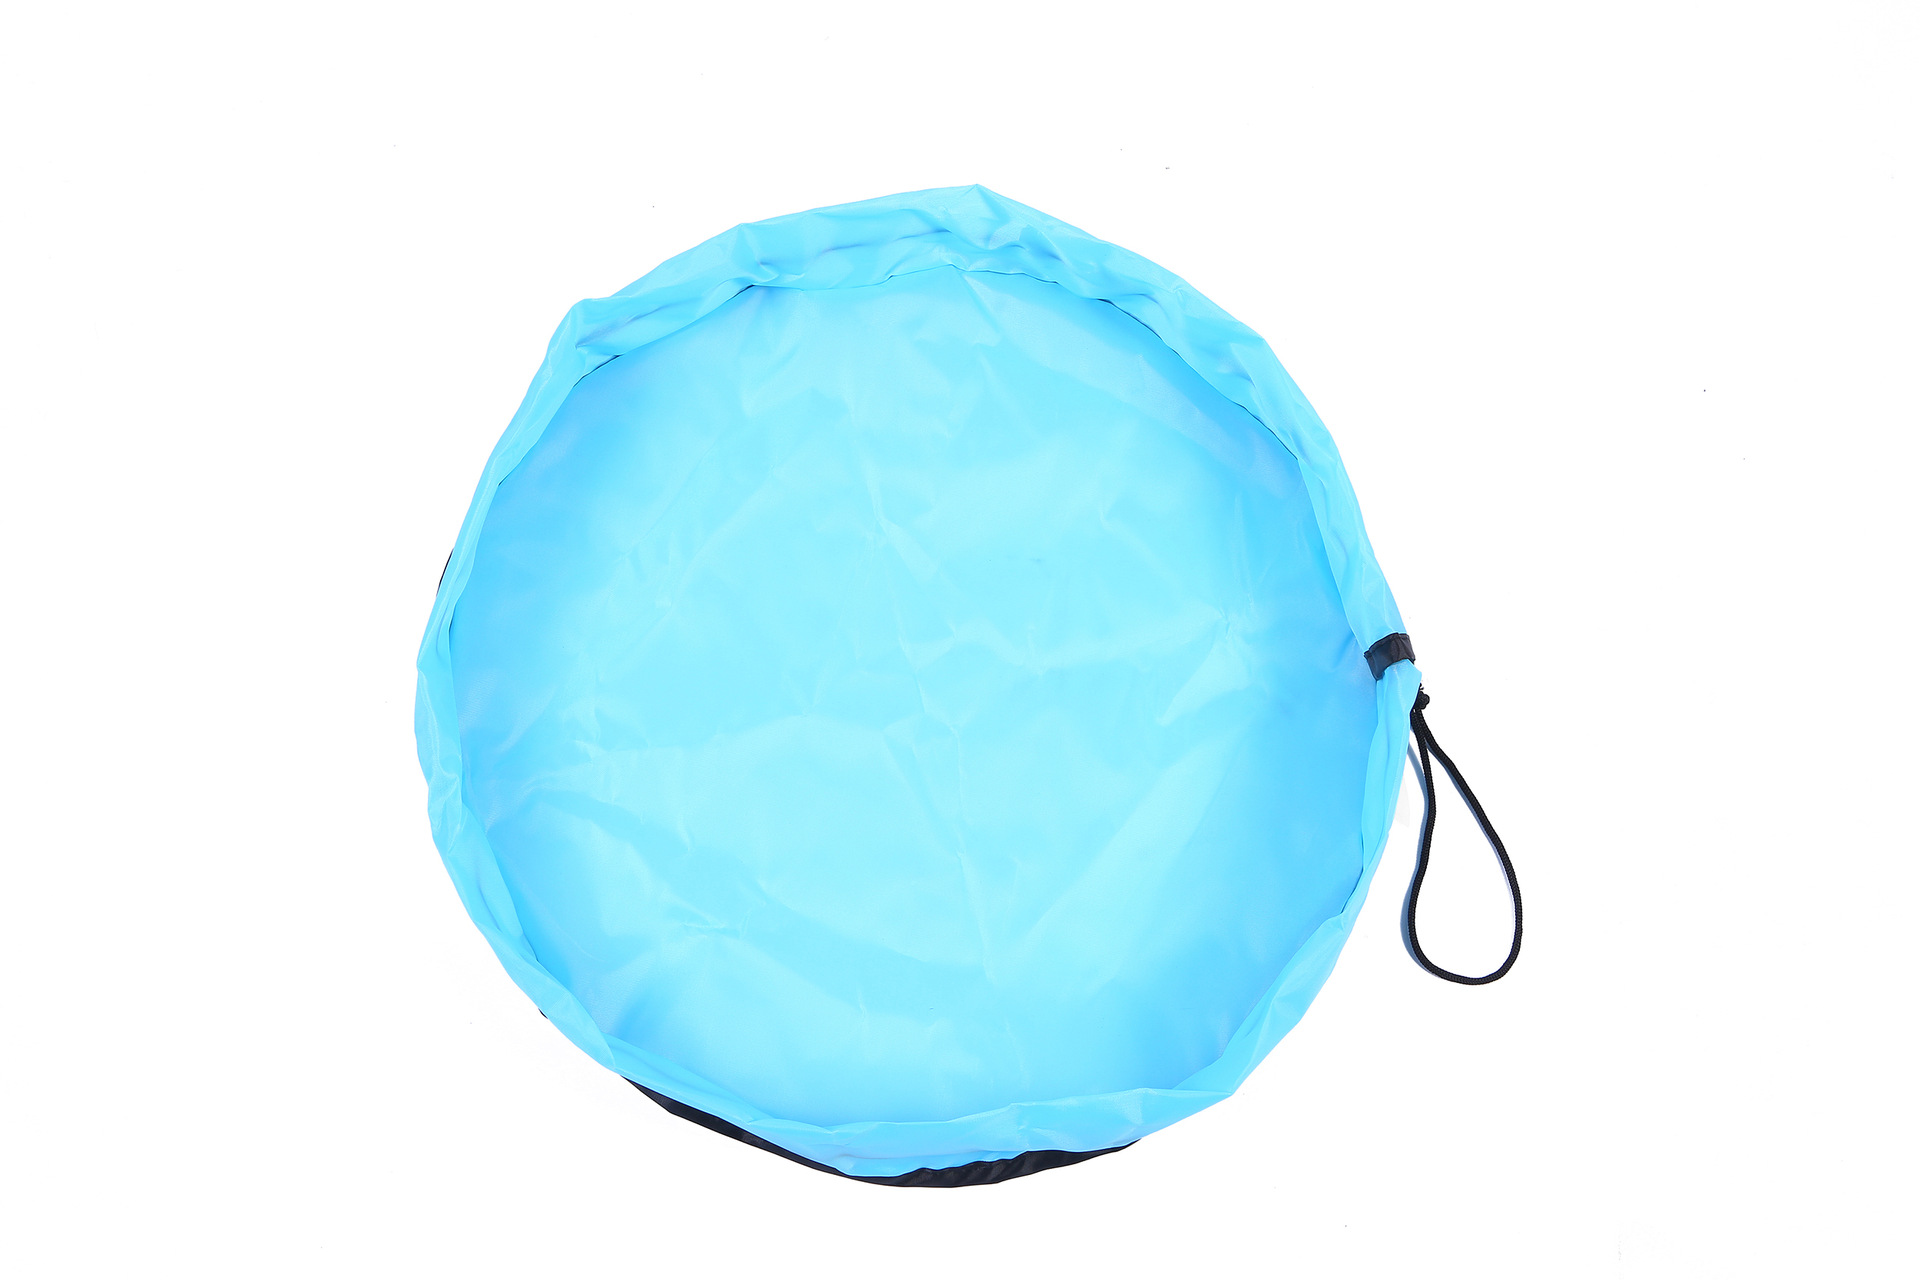 2020 Multifunctional baby toy fast storage bag play mat outdoor children s waterproof toy mat beam 2020 Multifunctional baby toy fast storage bag play mat outdoor children's waterproof toy mat beam storage bag beach mat